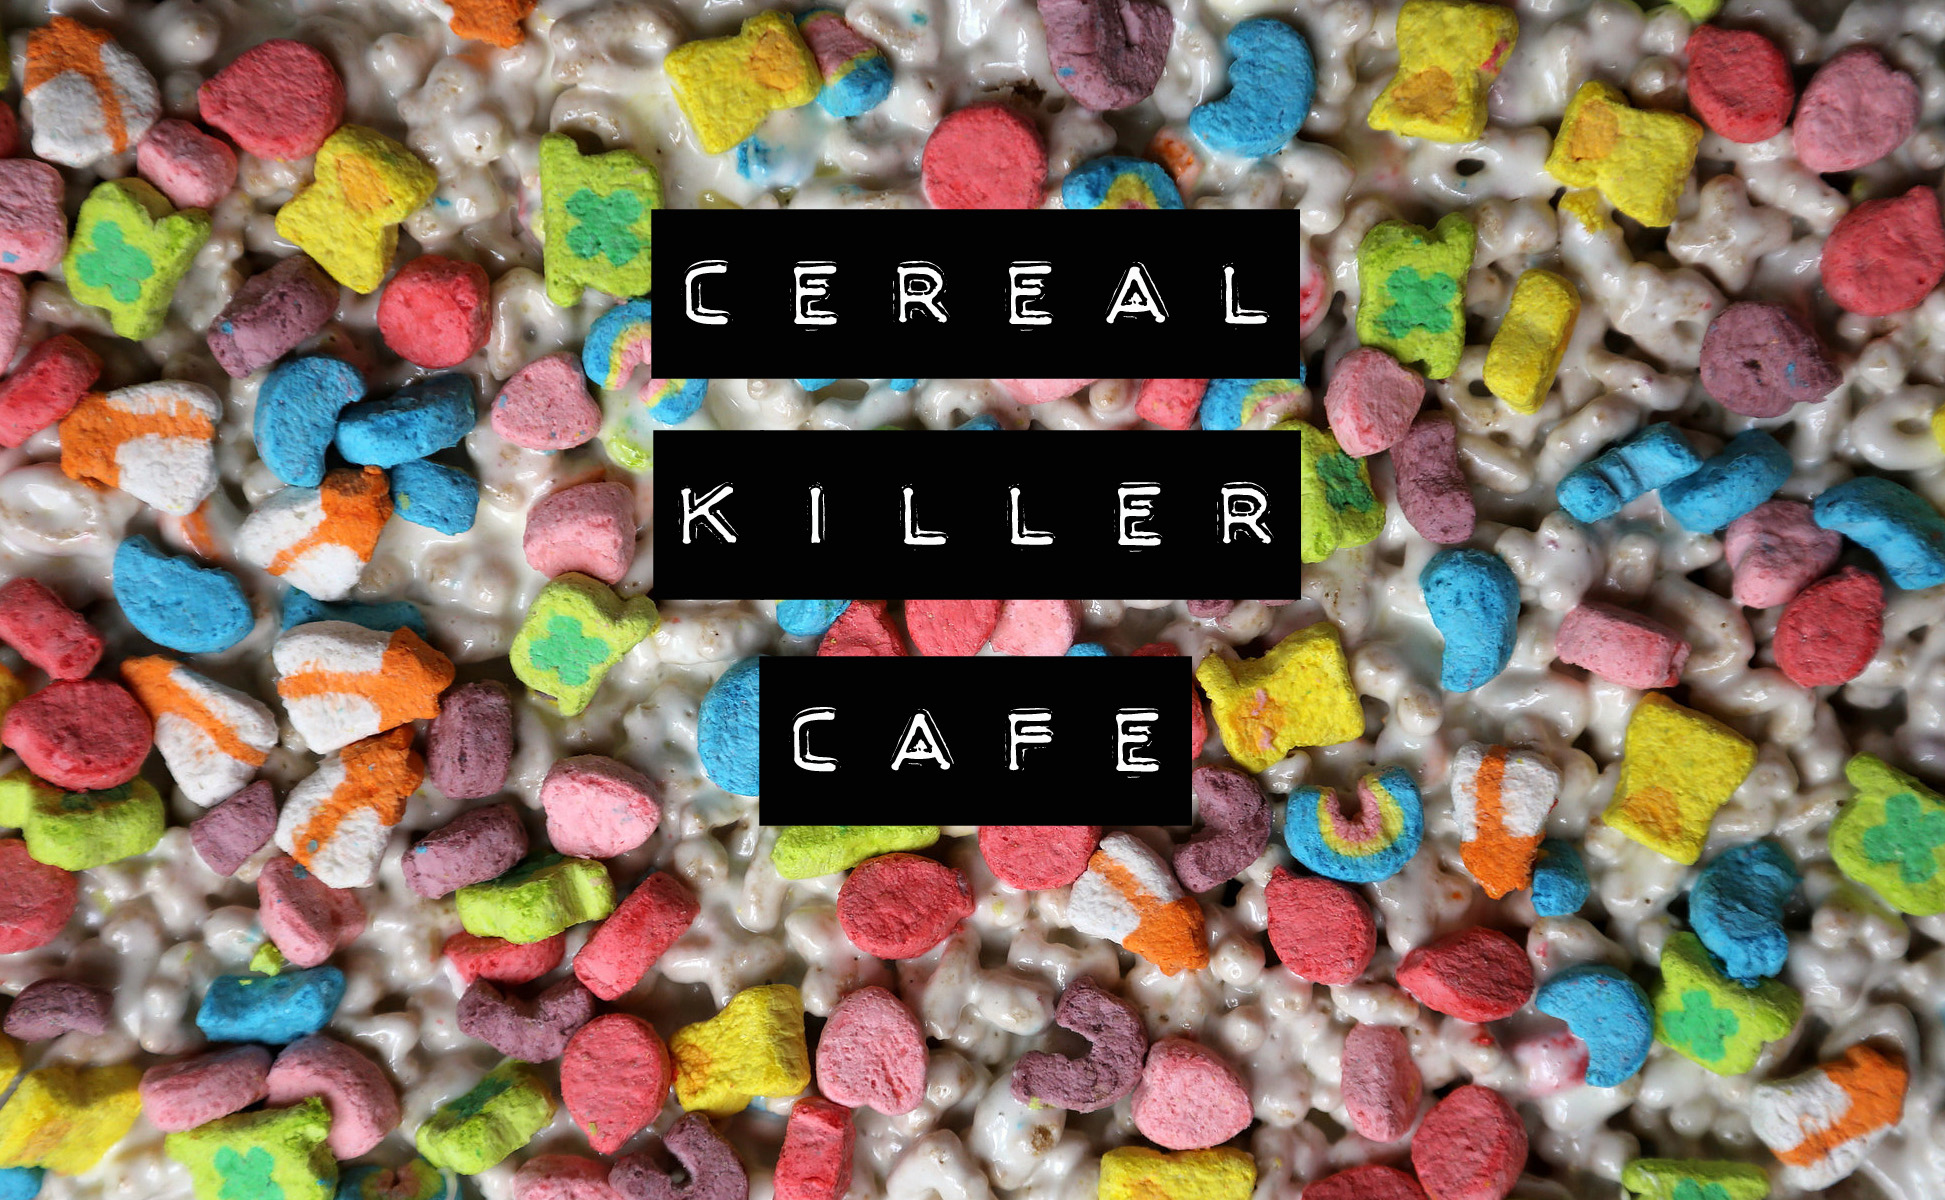 The UK's First Cereal-Only Cafe Will Serve 100 Cereals From Around the World